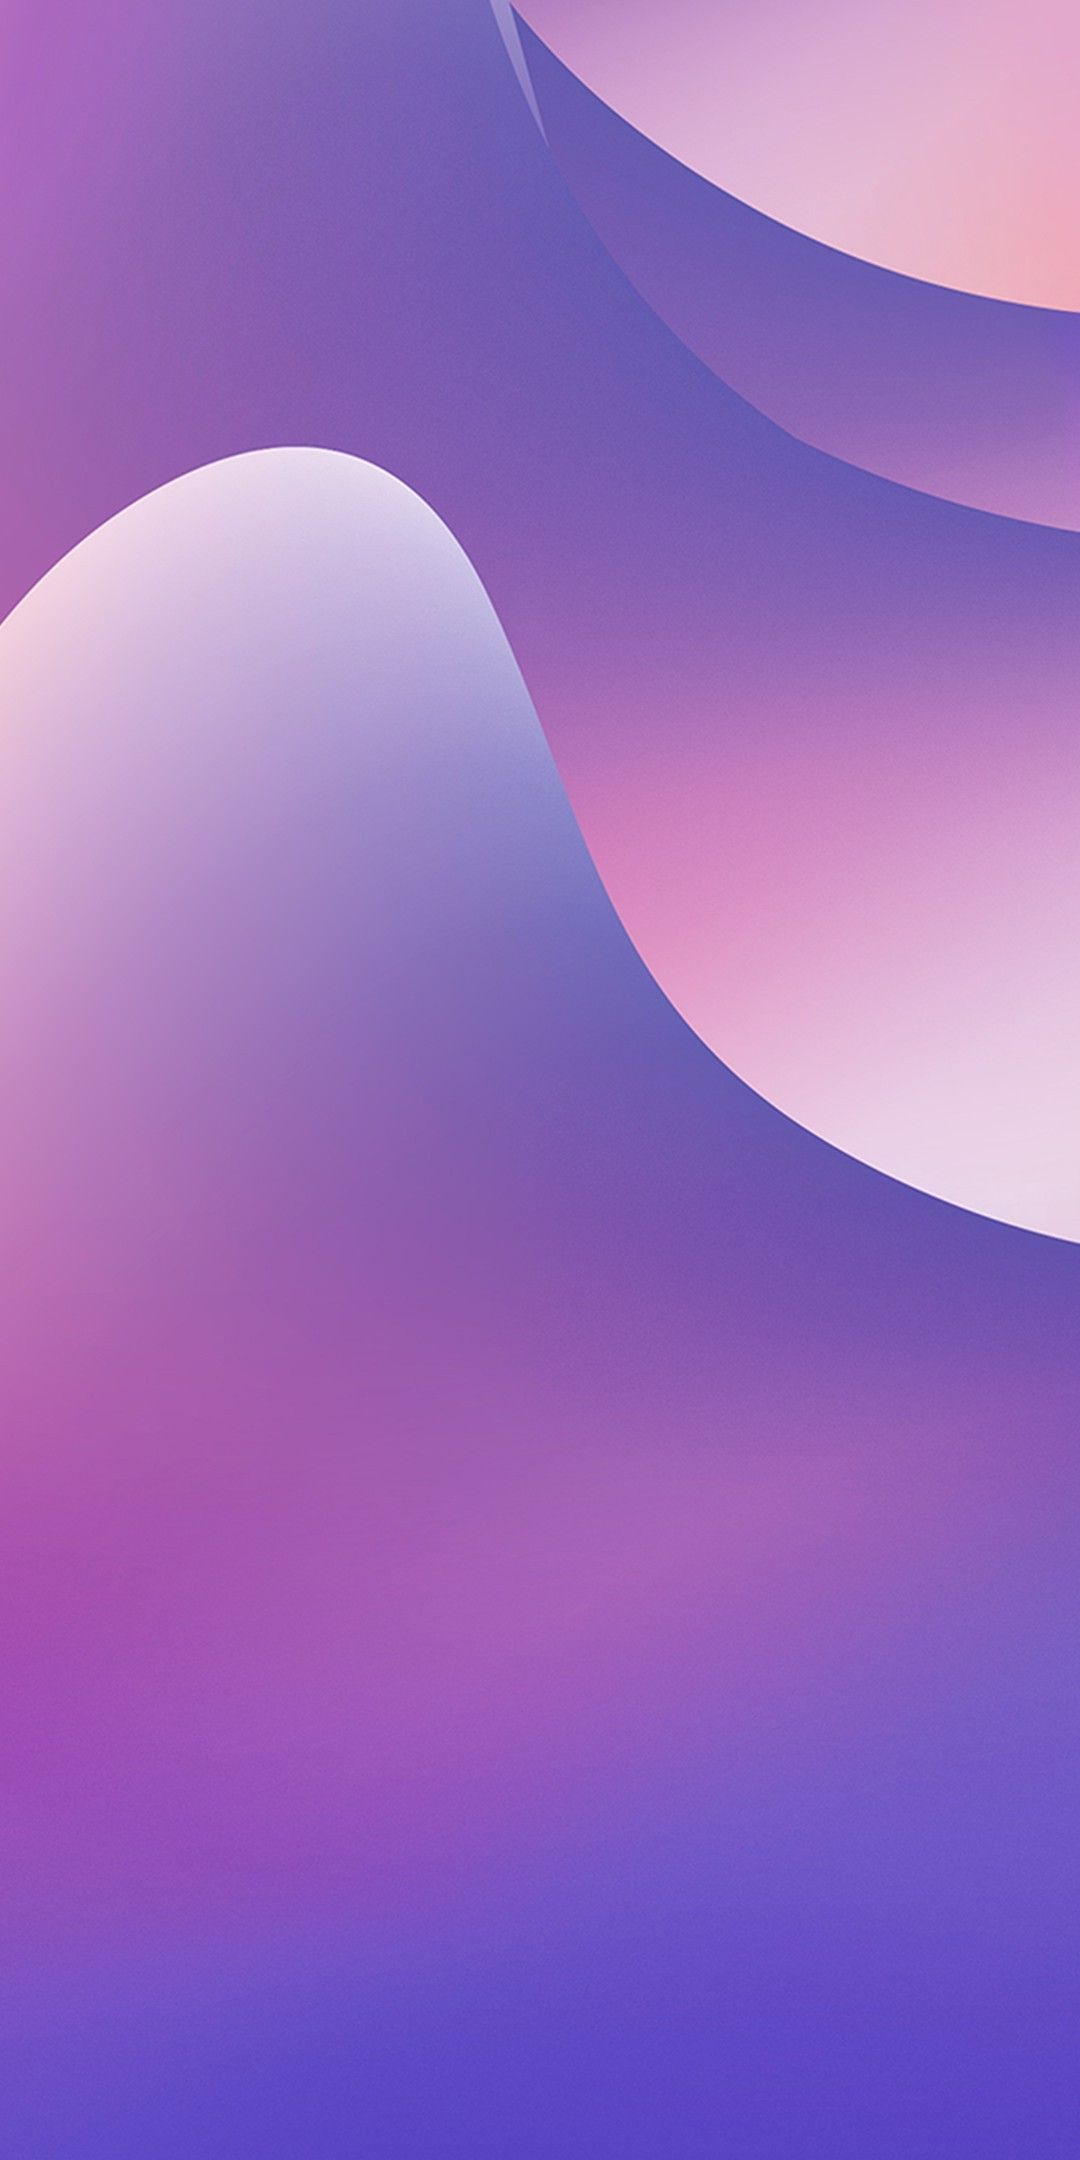 Huawei Y9 With Images Apple Logo Wallpaper Cute Wallpapers